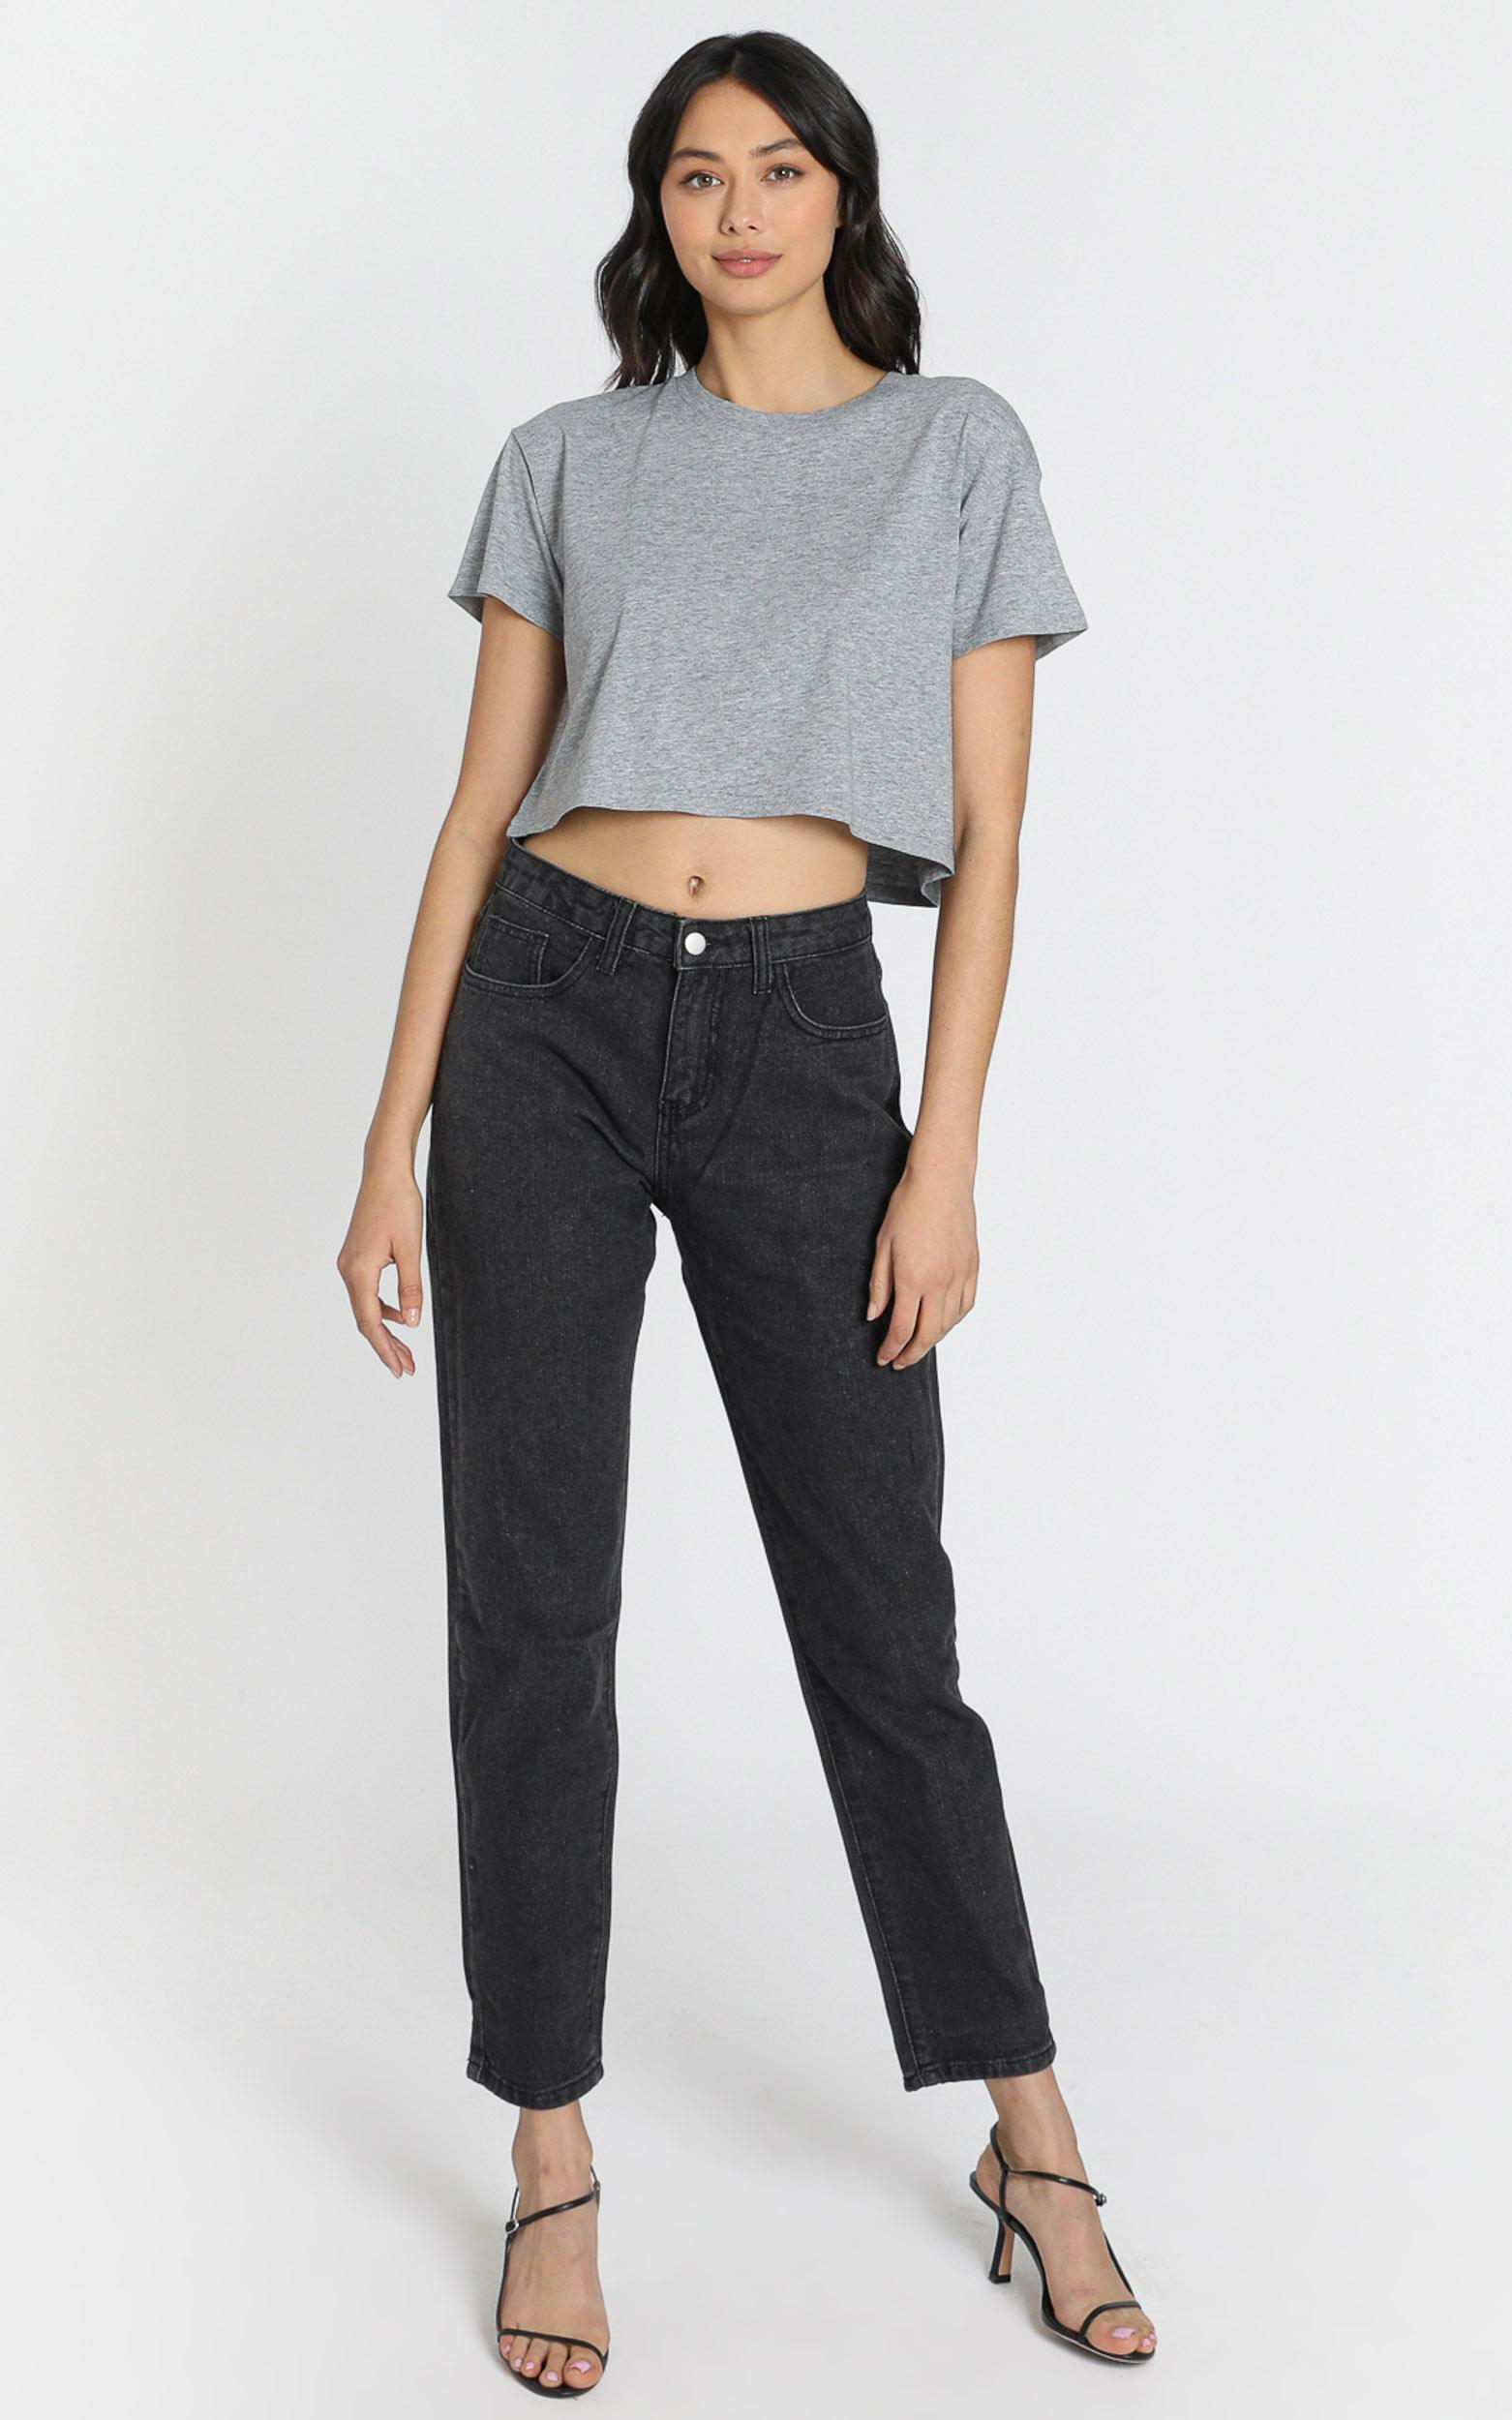 Back it up MOM jeans Charcoal - 6 (XS), Charcoal, hi-res image number null